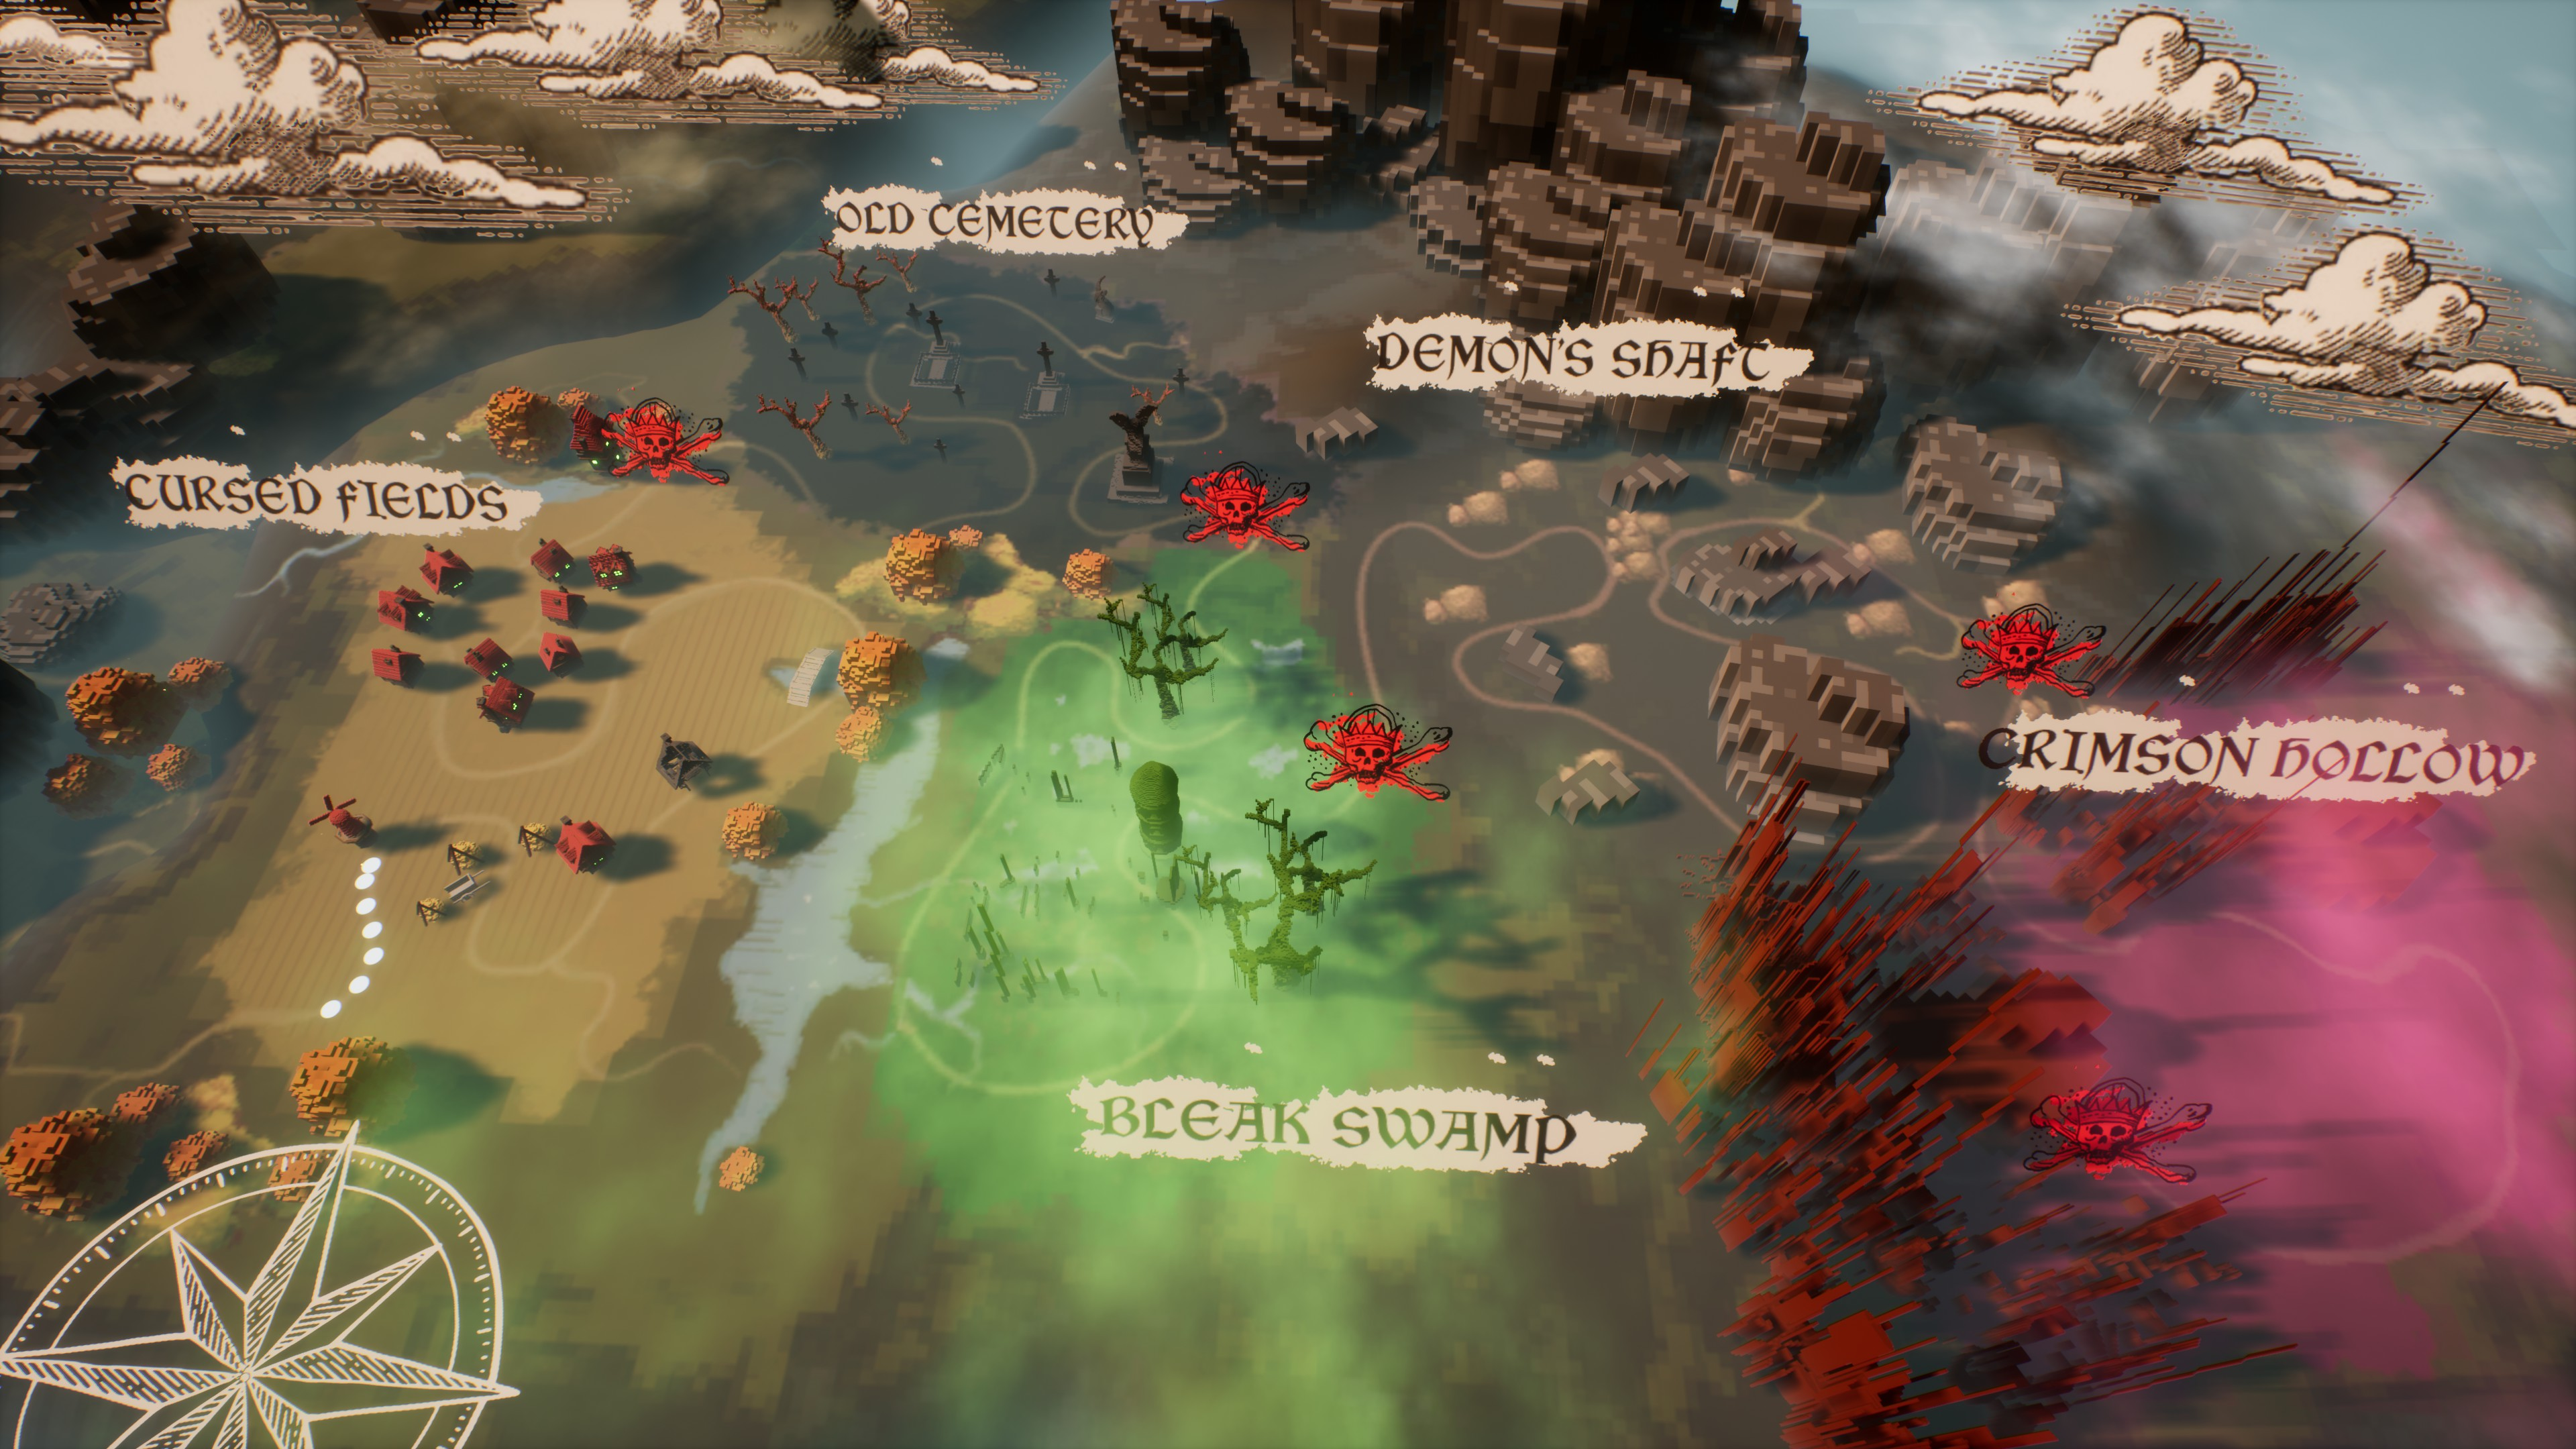 Heretic's Lot: Prologue World map featuring cursed fields, old cemetery, bleak swamp, demon's shaft, and crimson hollow.